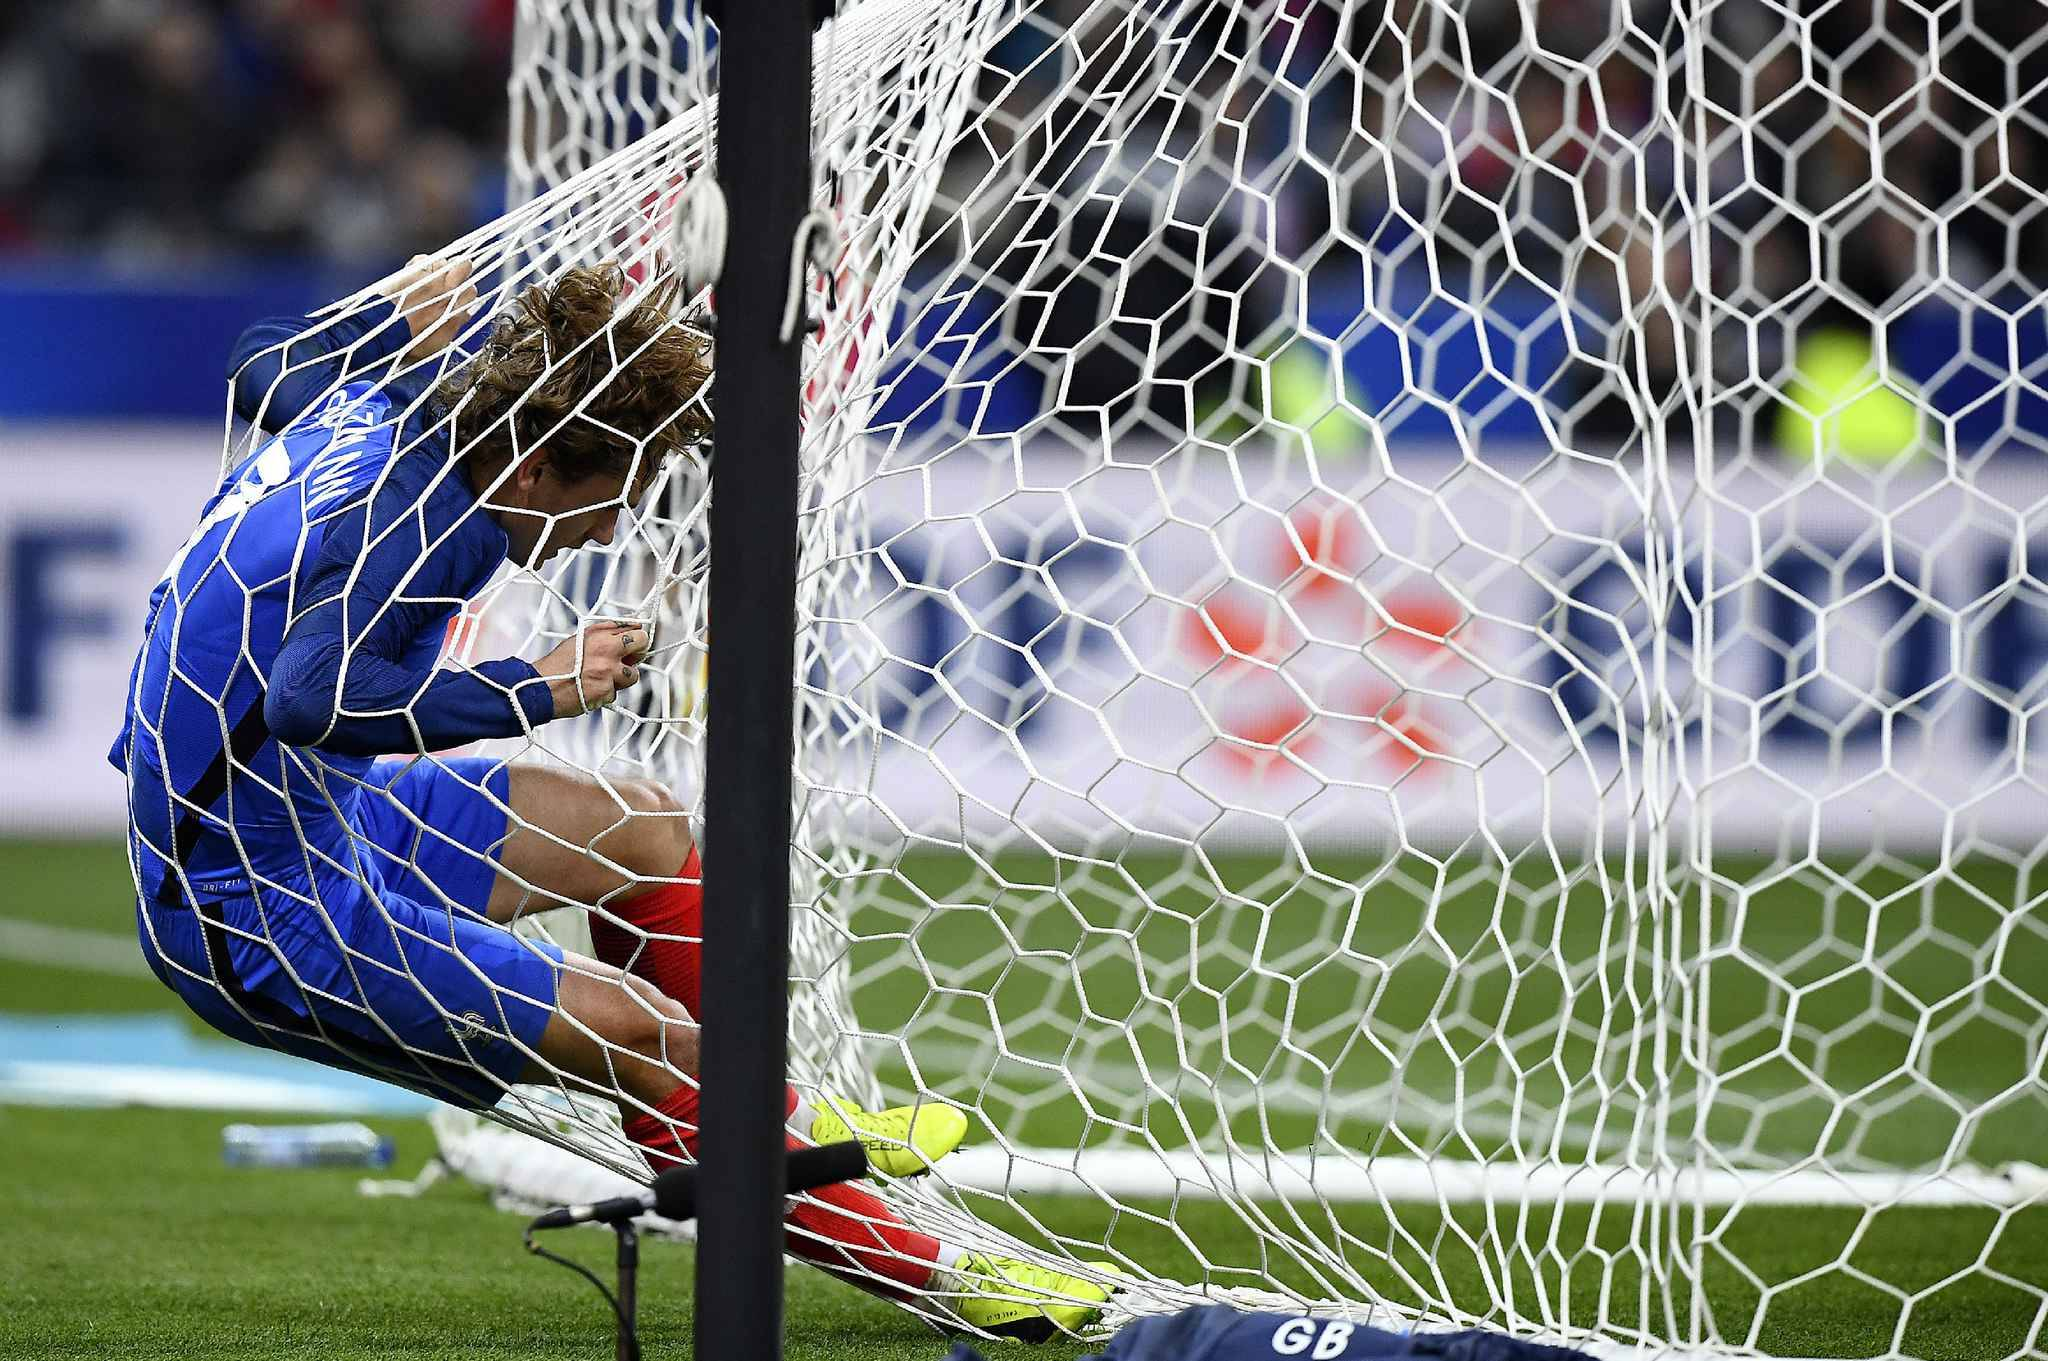 France's forward Antoine Griezmann falls into the net of the goal during the friendly football match France vs Spain on March 28, 2017 at the Stade de France stadium in Saint-Denis, north of Paris. Spain won the match 0-2.